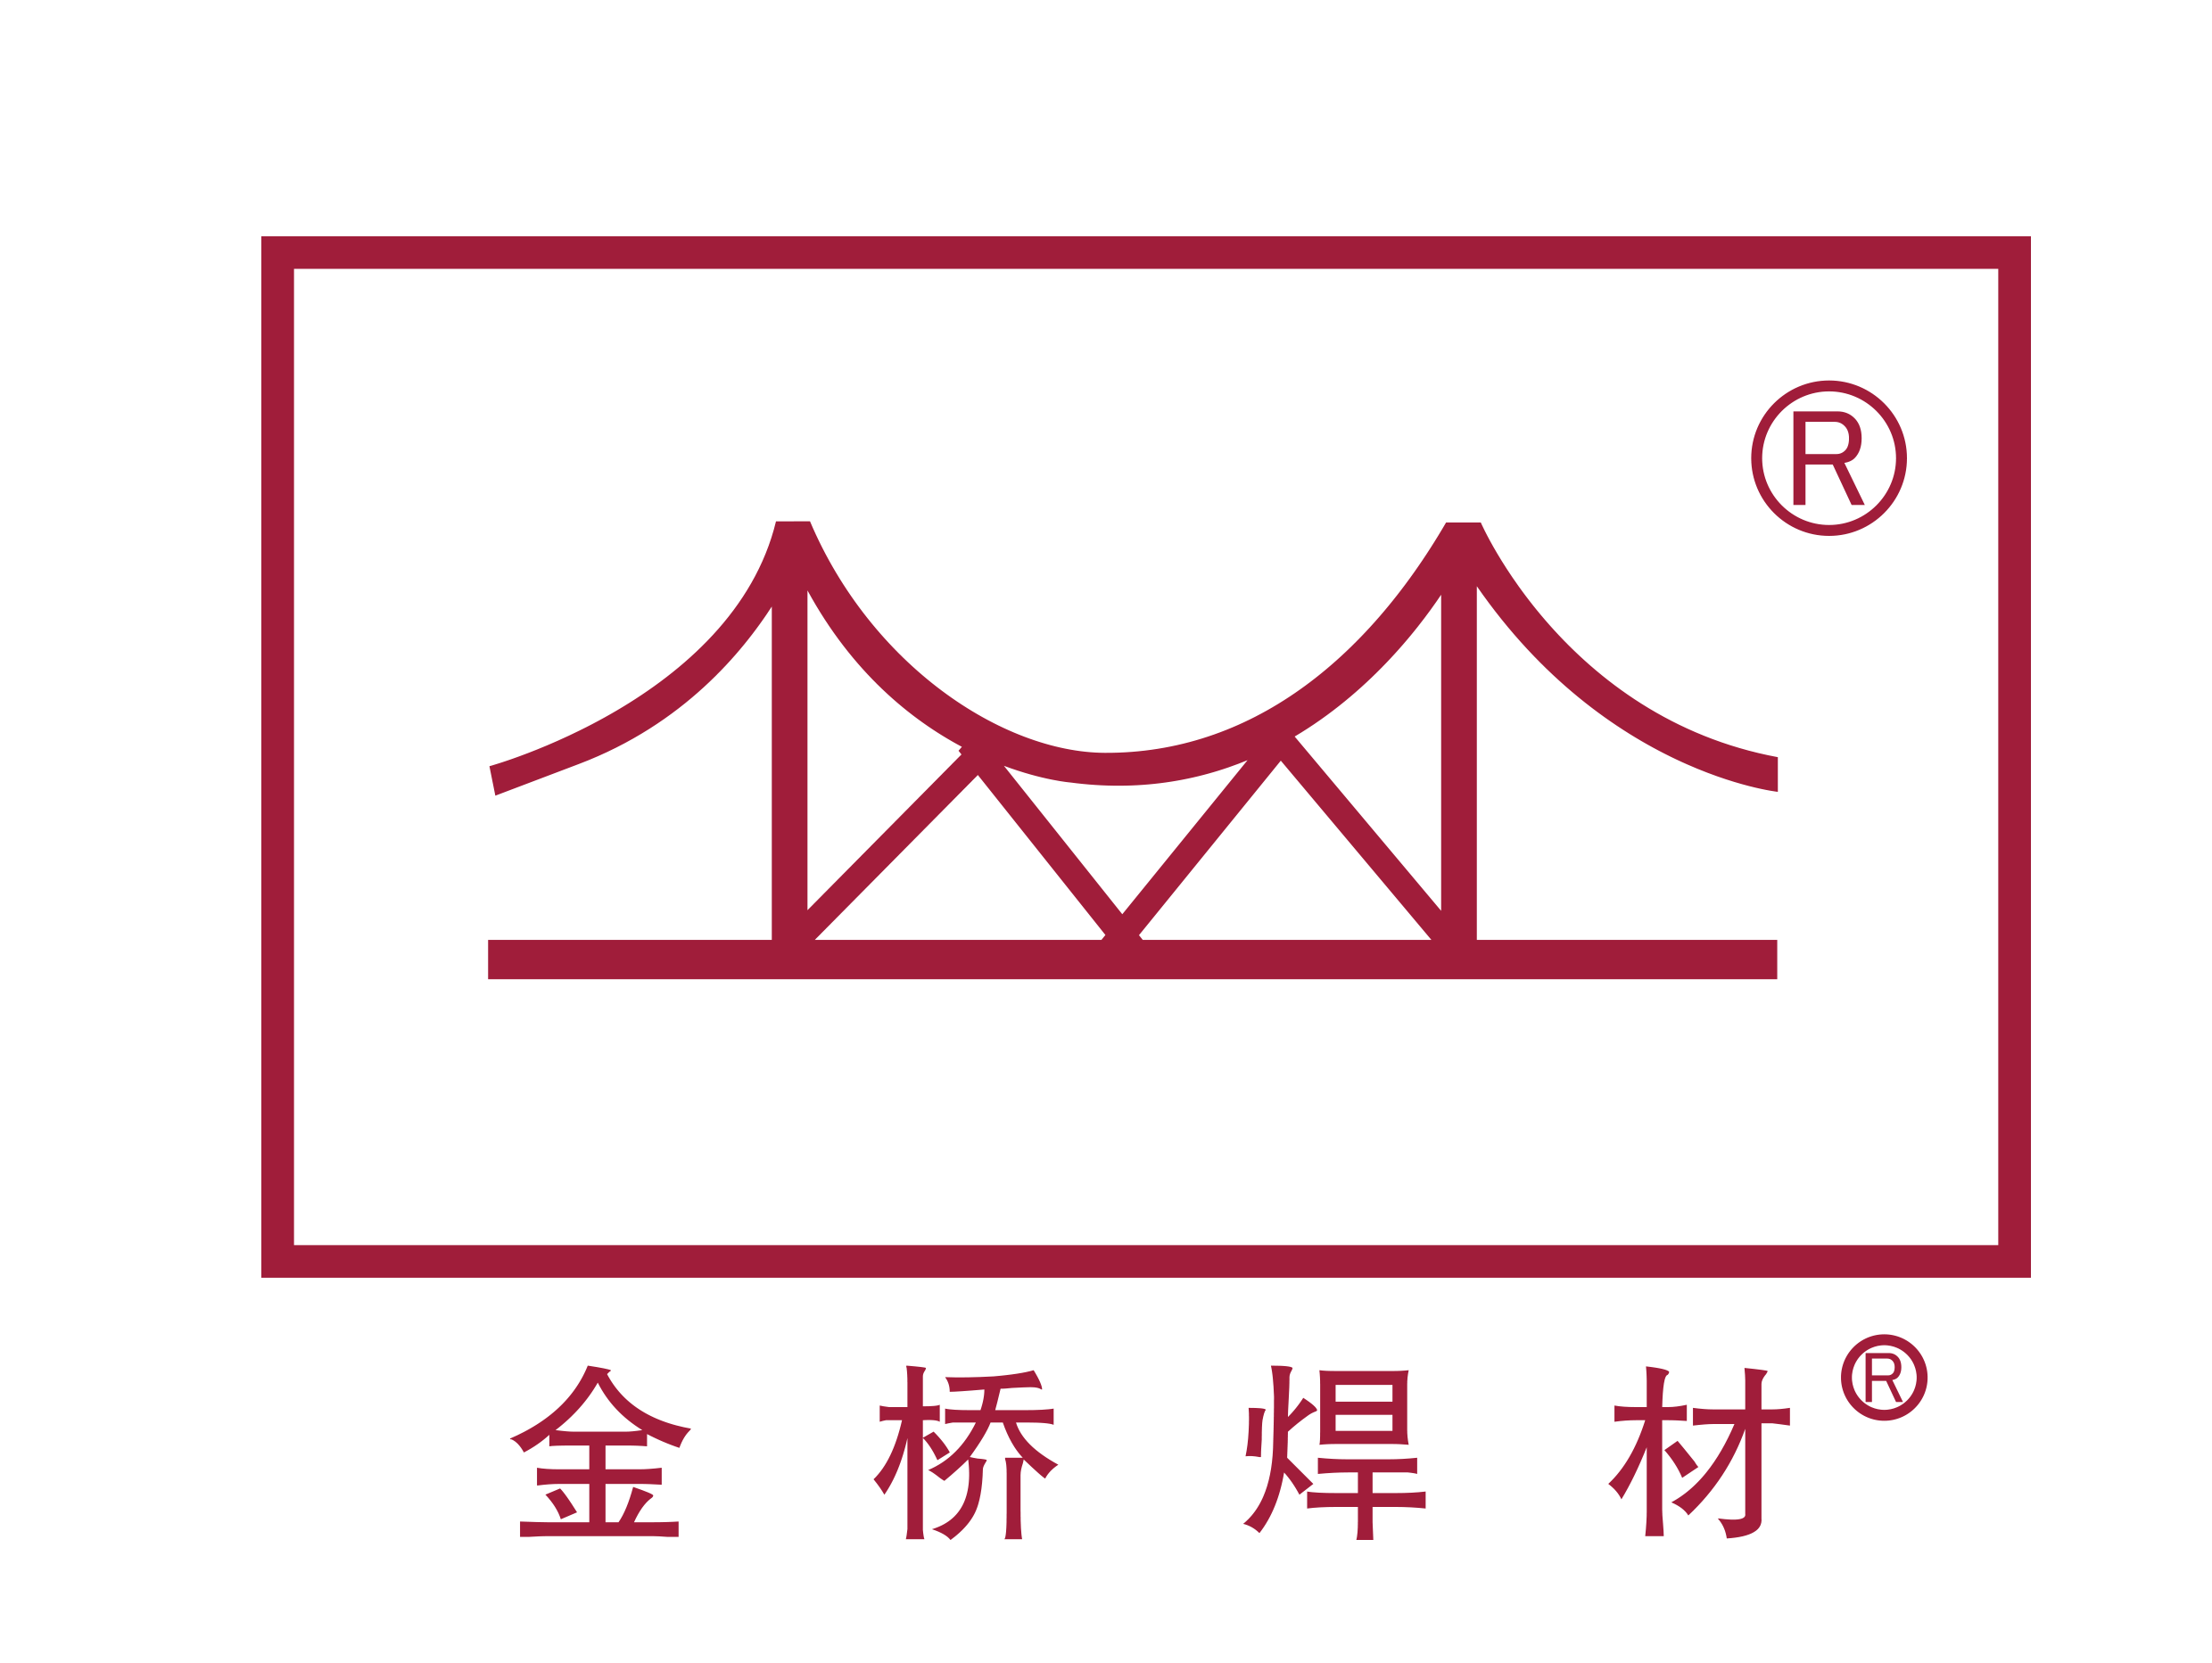 TIANJIN GOLDEN BRIDGE WELDING MATERIALS GROUP CO. LTD.